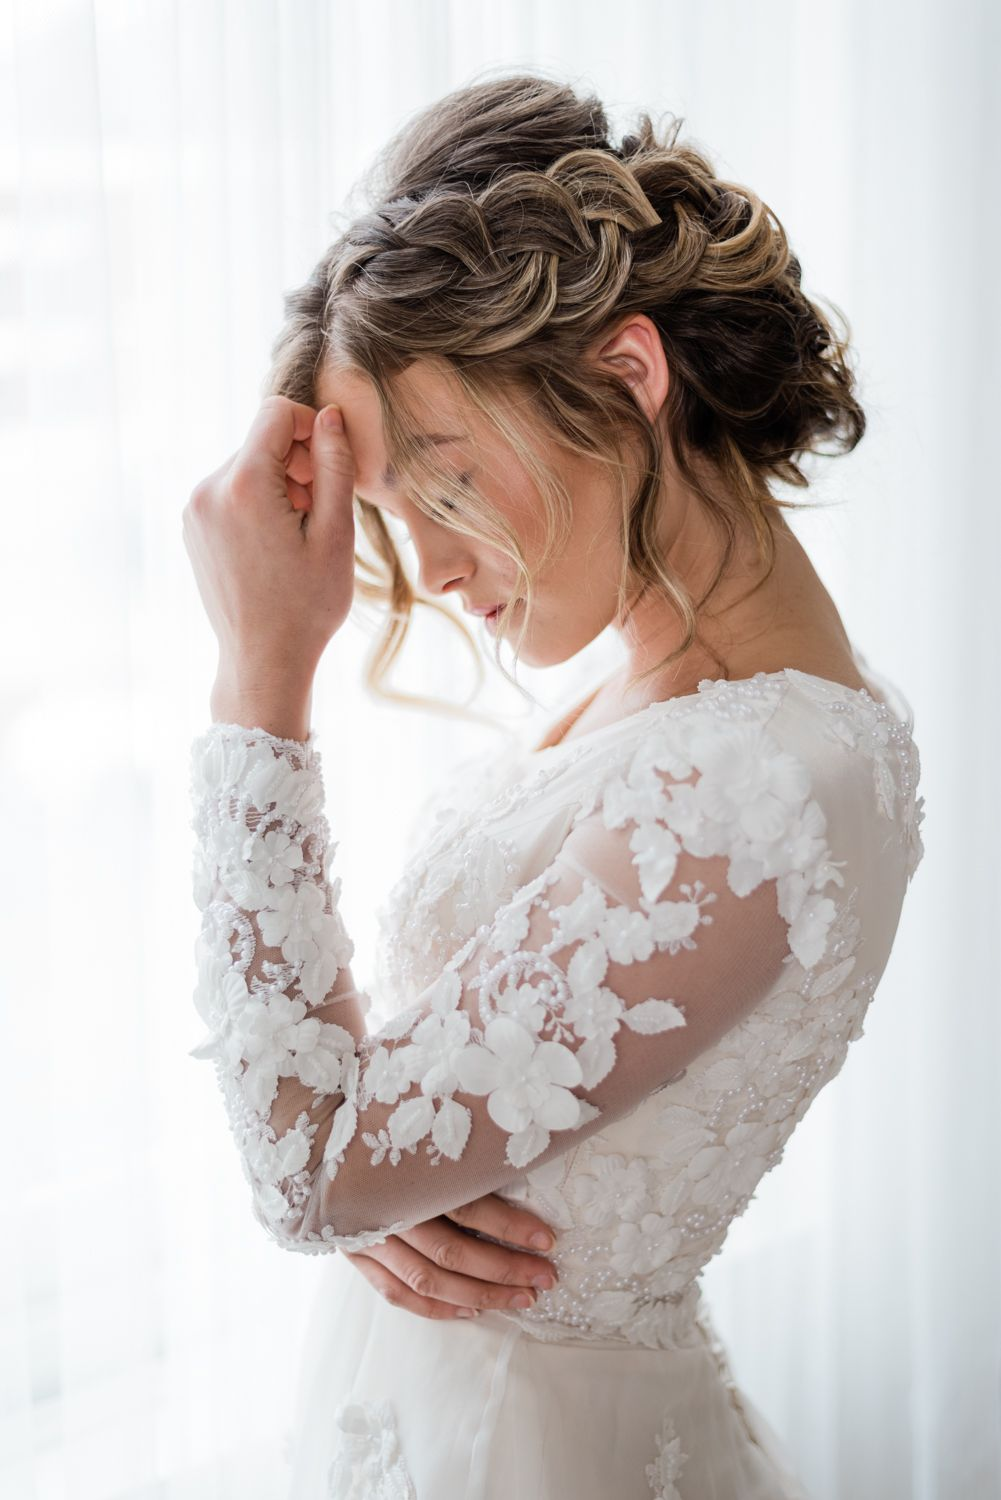 Editorial Bridal Shoot For Elizabeth Cooper Design Modest Wedding Gowns Photo By Whitney F Modest Wedding Gowns Bridal Photoshoot Knee Length Wedding Dress [ 1500 x 1001 Pixel ]